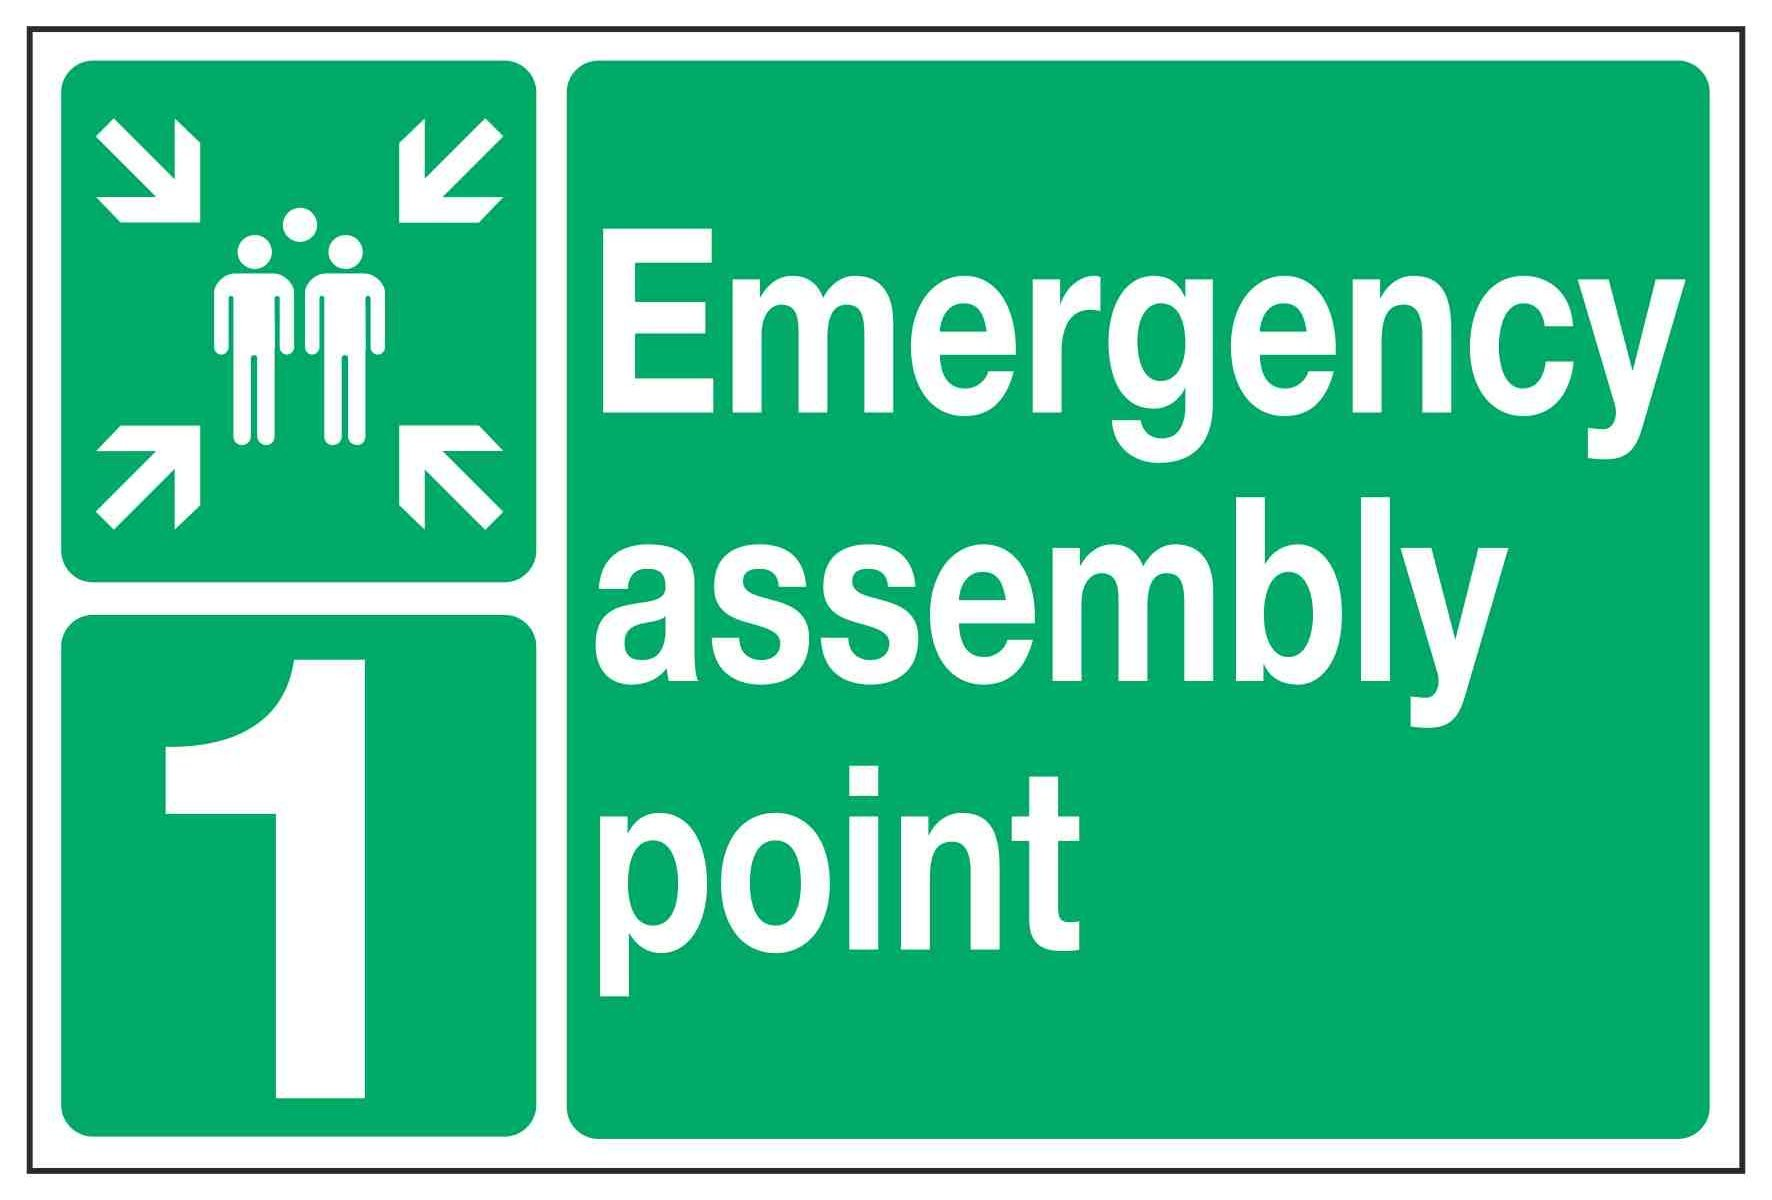 Emergency assembly point (+ Optional number or letter)